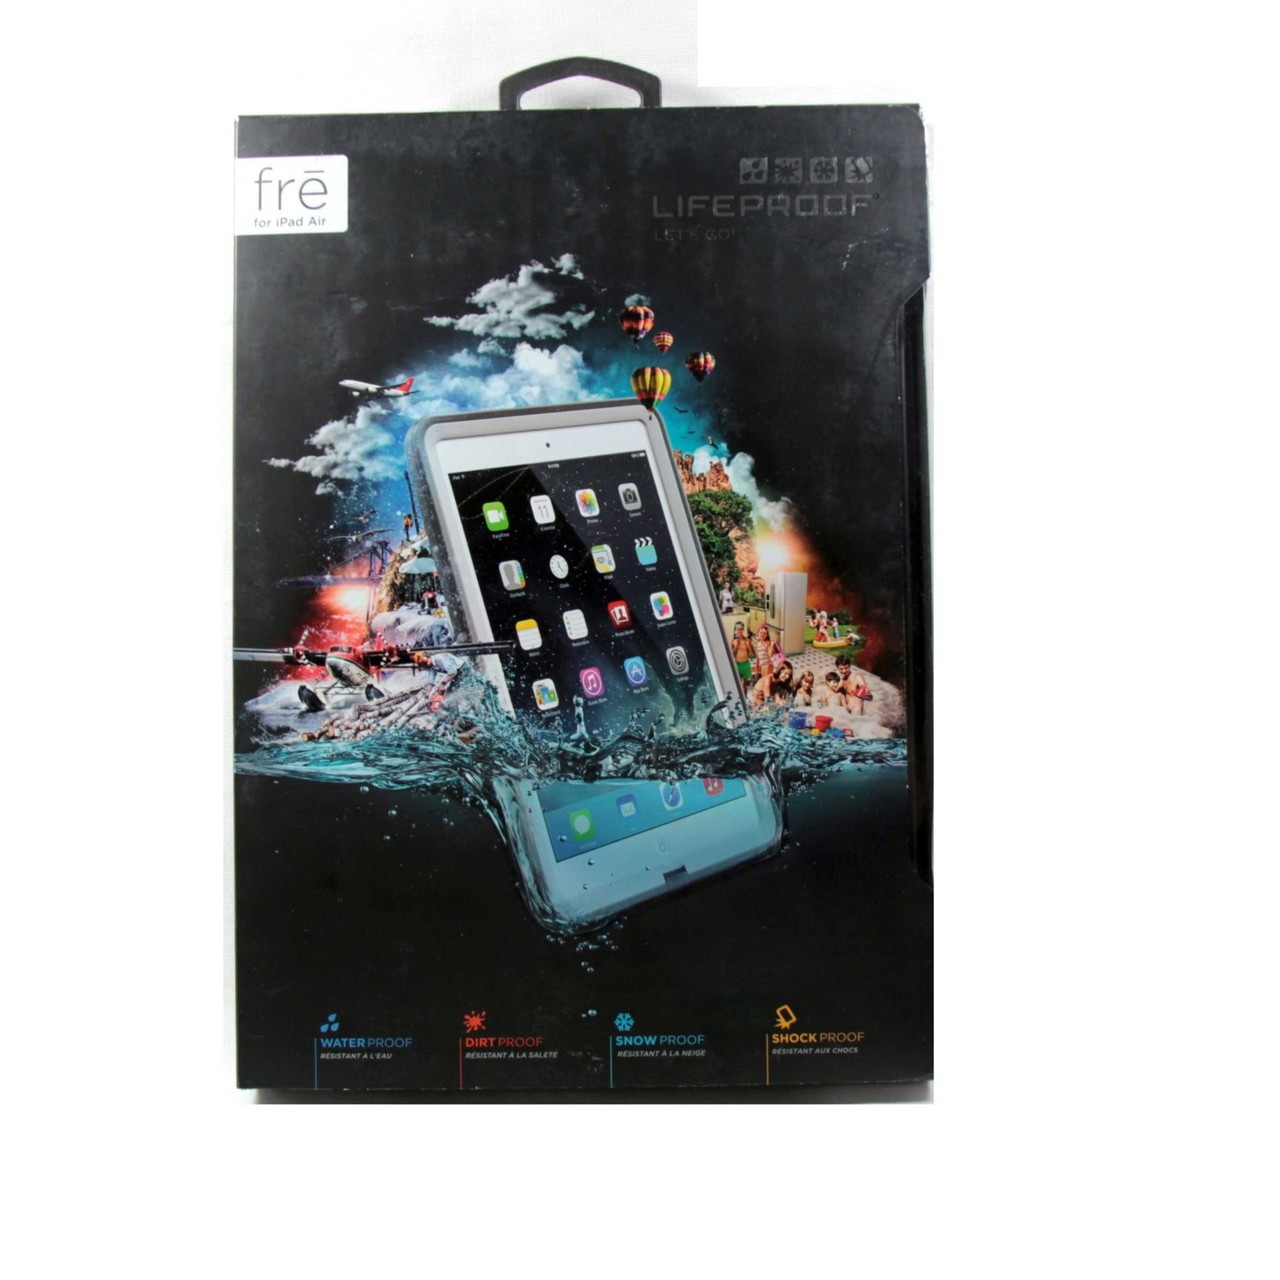 online retailer cc291 2901b Lifeproof Fre Case for iPad Air White Grey